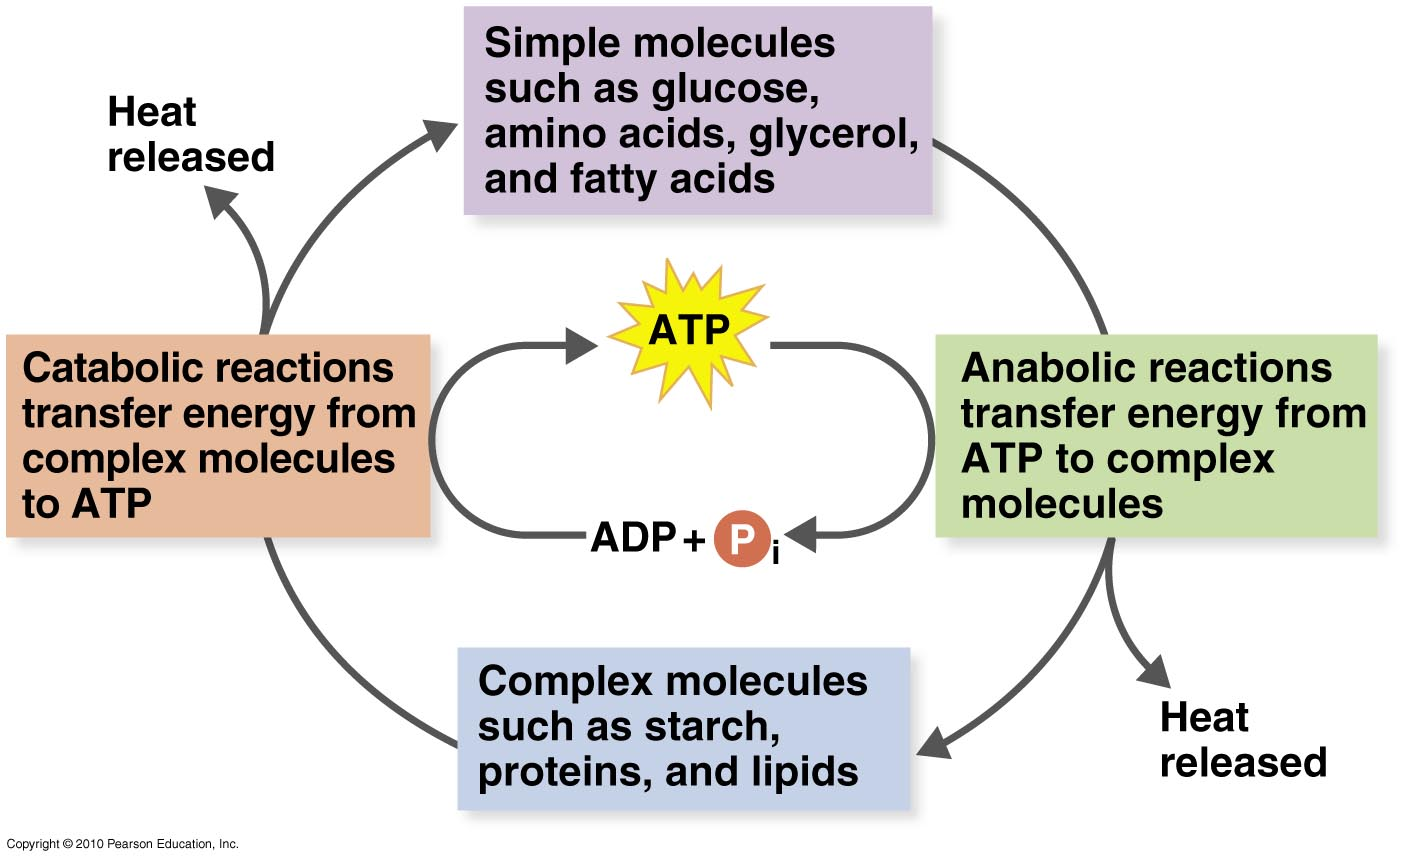 anabolic processes in the liver